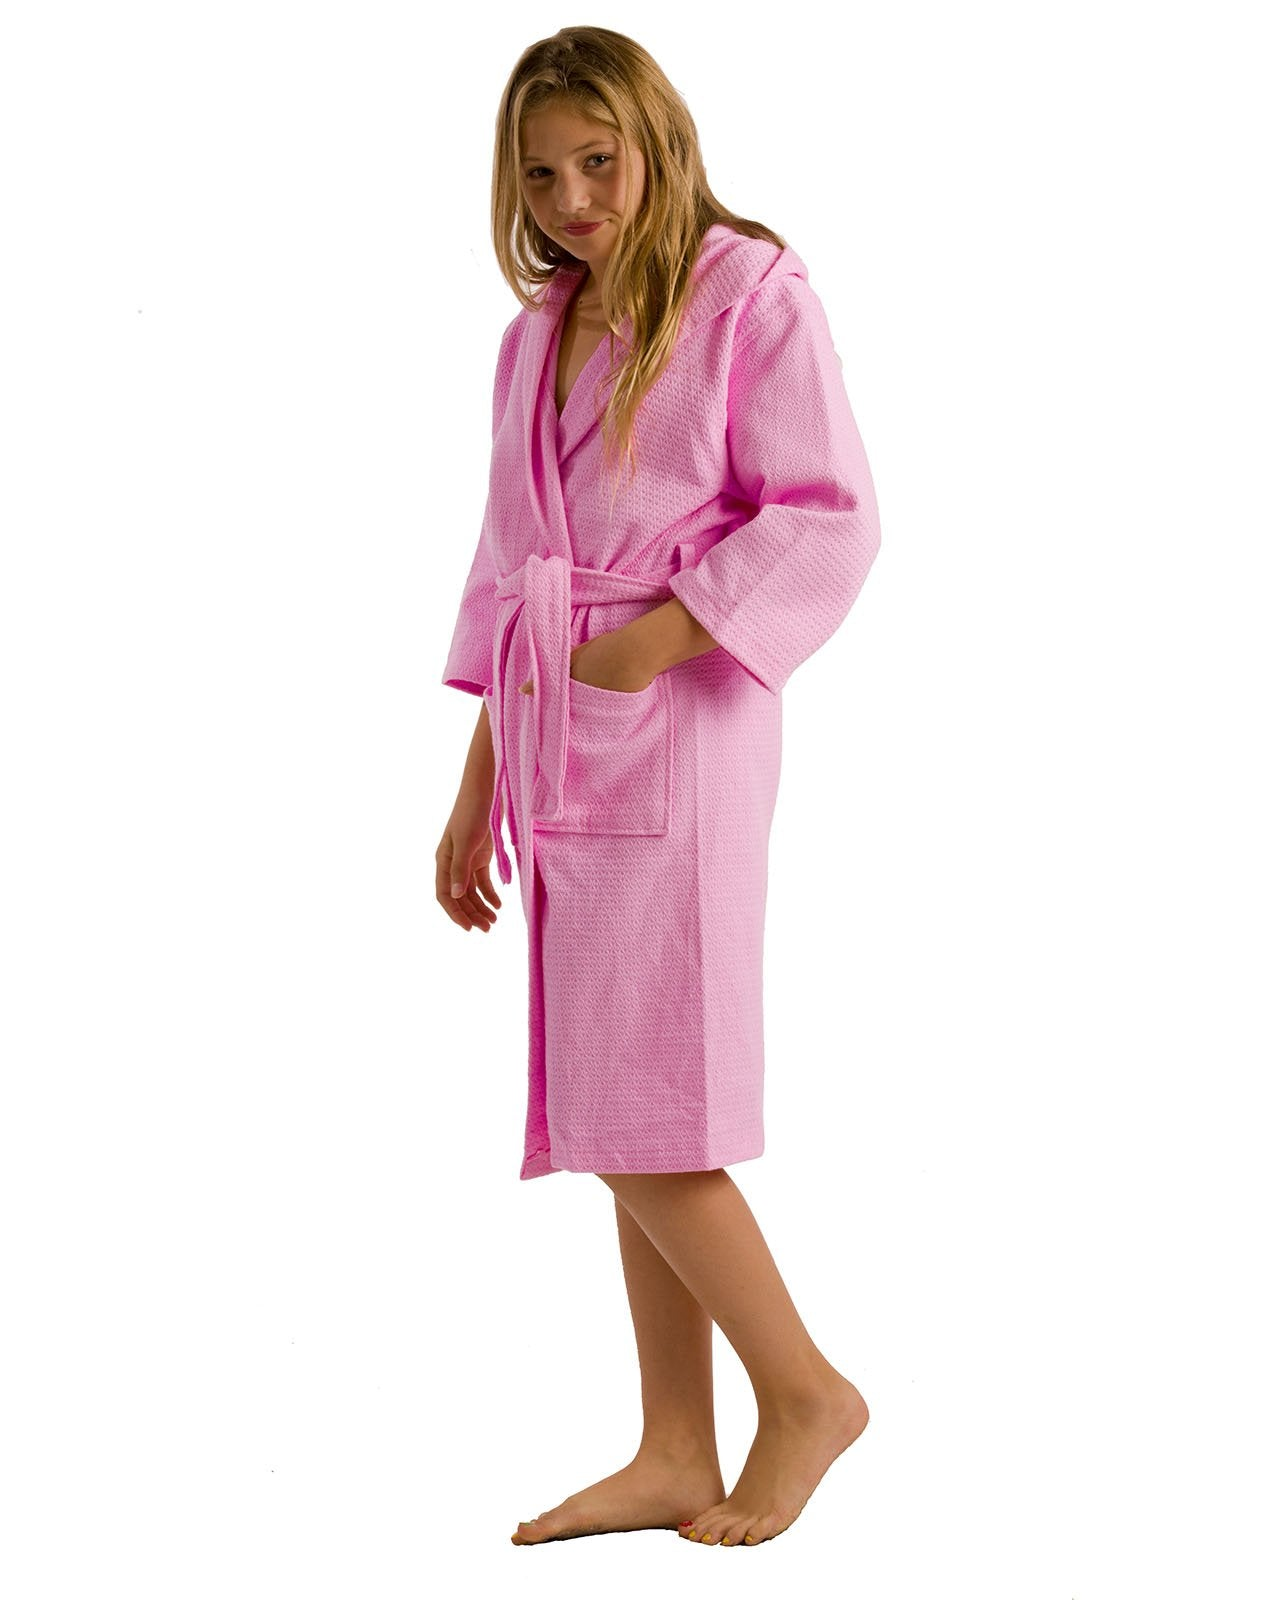 Diamond Weave Hooded Kids Robes - bath towel wrap with straps